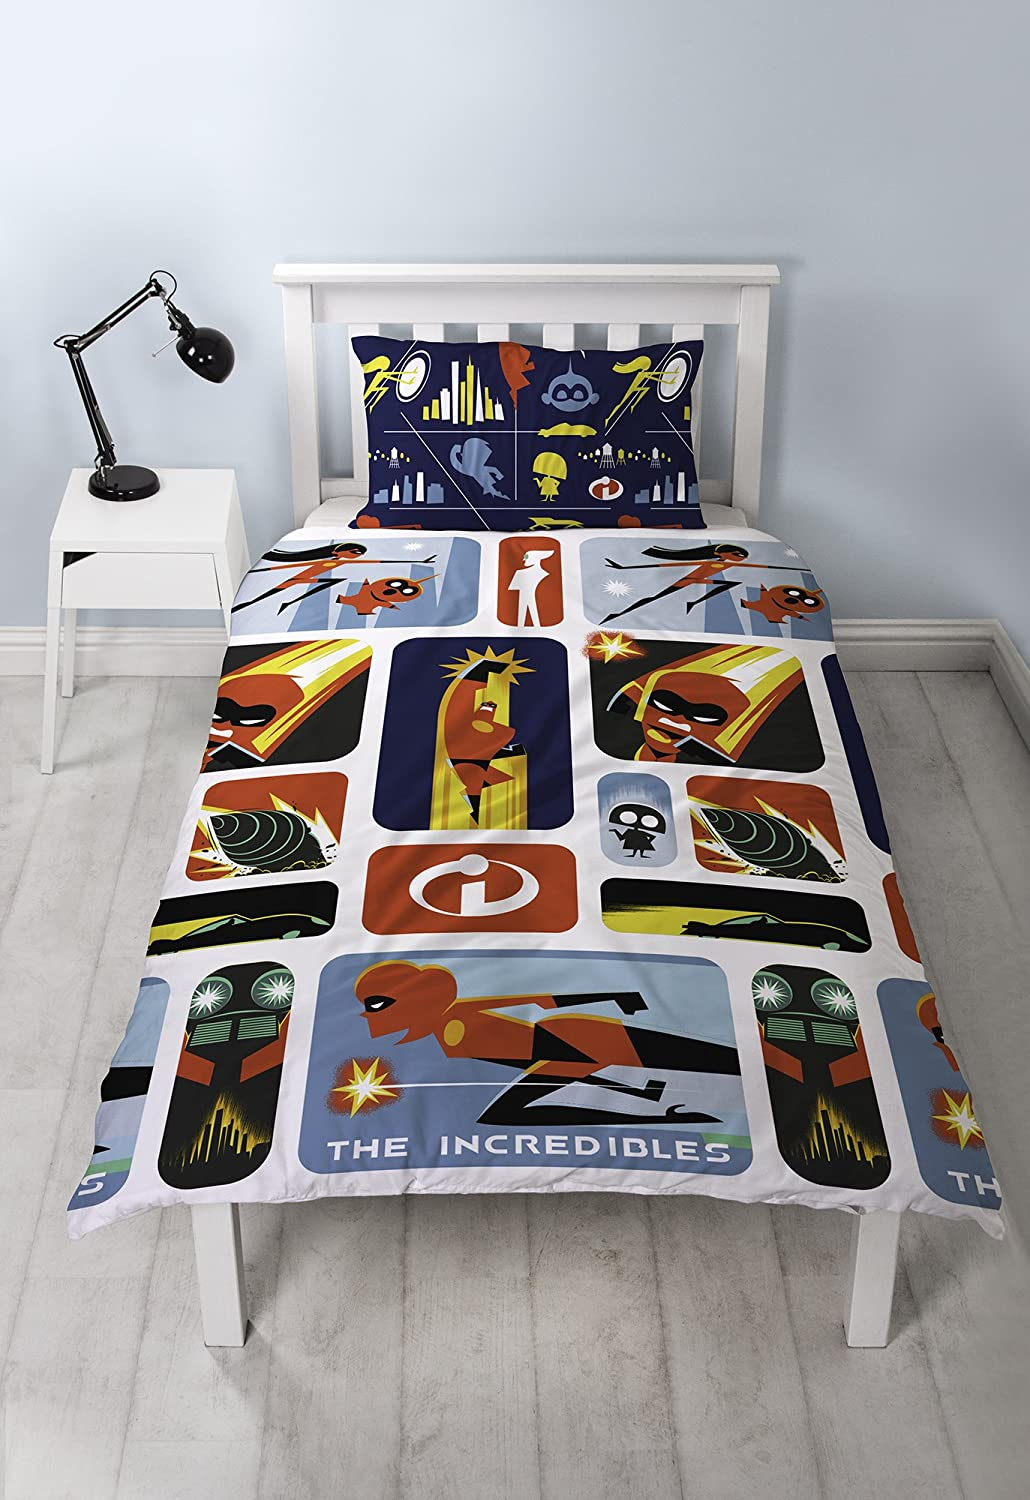 Disney The Incredibles 2 Single Duvet Cover | Reversible Retro Two Sided Design | Kids Bedding Set Includes Matching Pillow Case Character World DI2RETDS001UK1